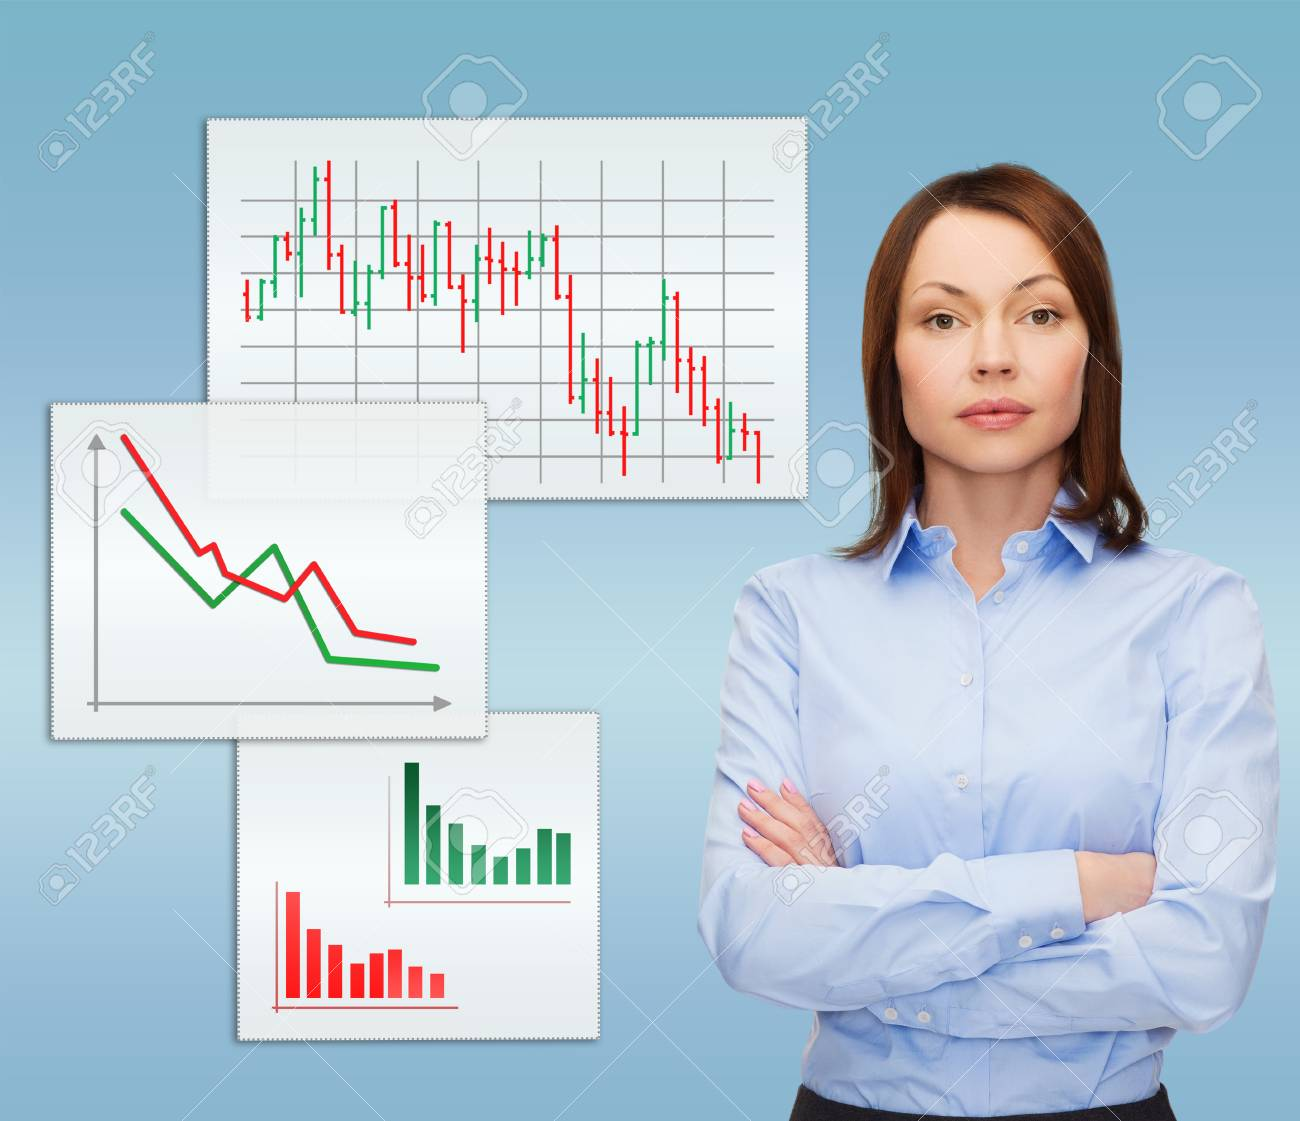 business and education concept - friendly young businesswoman with crossed arms Stock Photo - 26175582